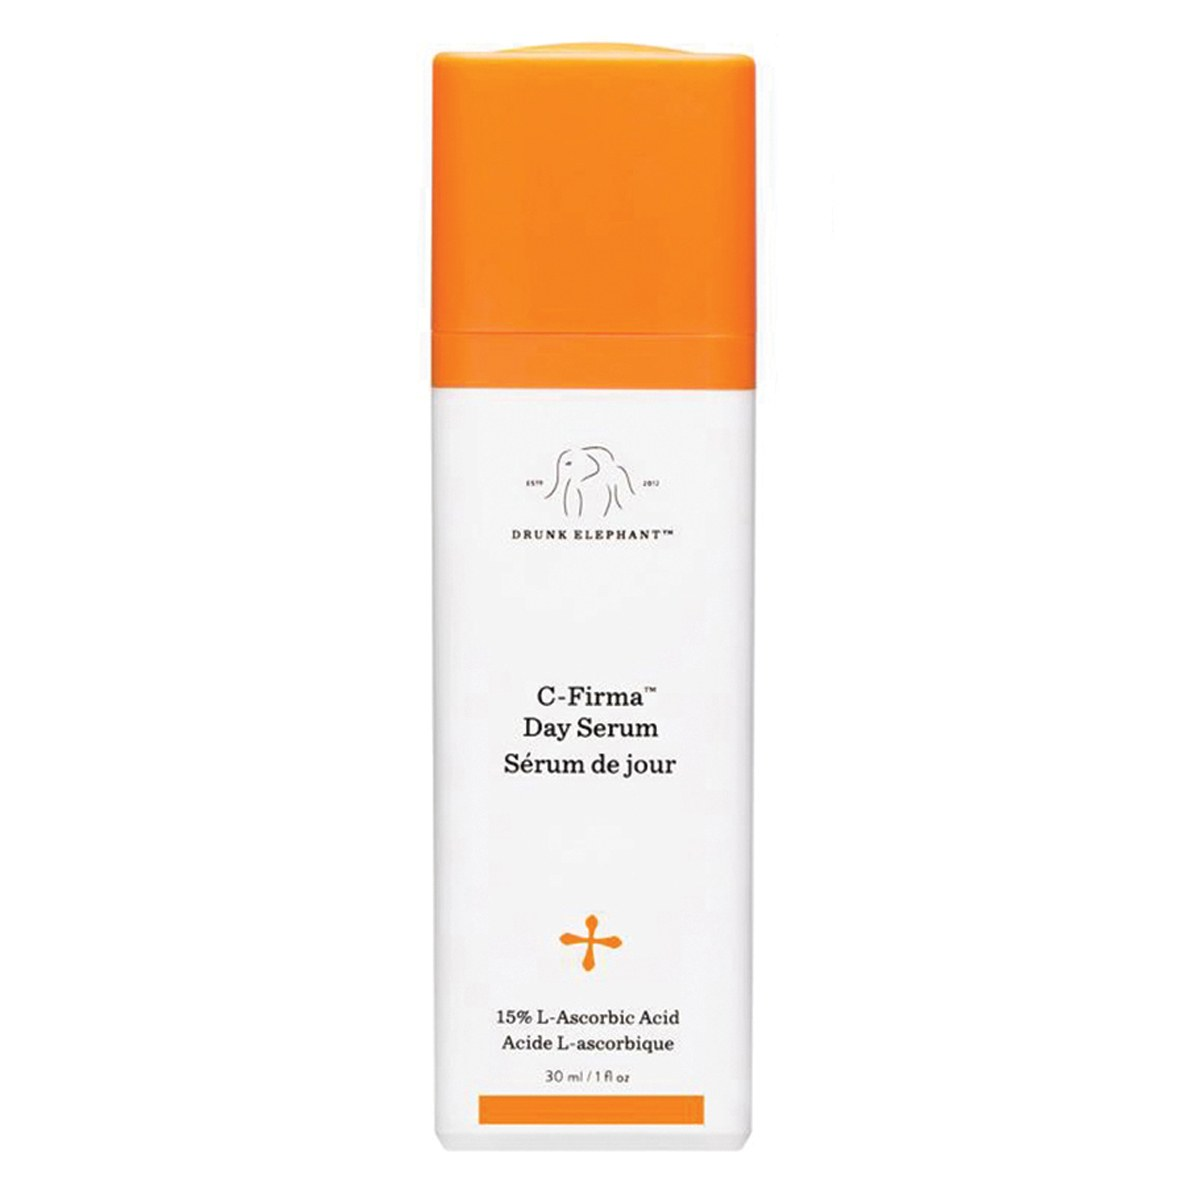 Drunk Elephant C-Firma Day Serum.jpg